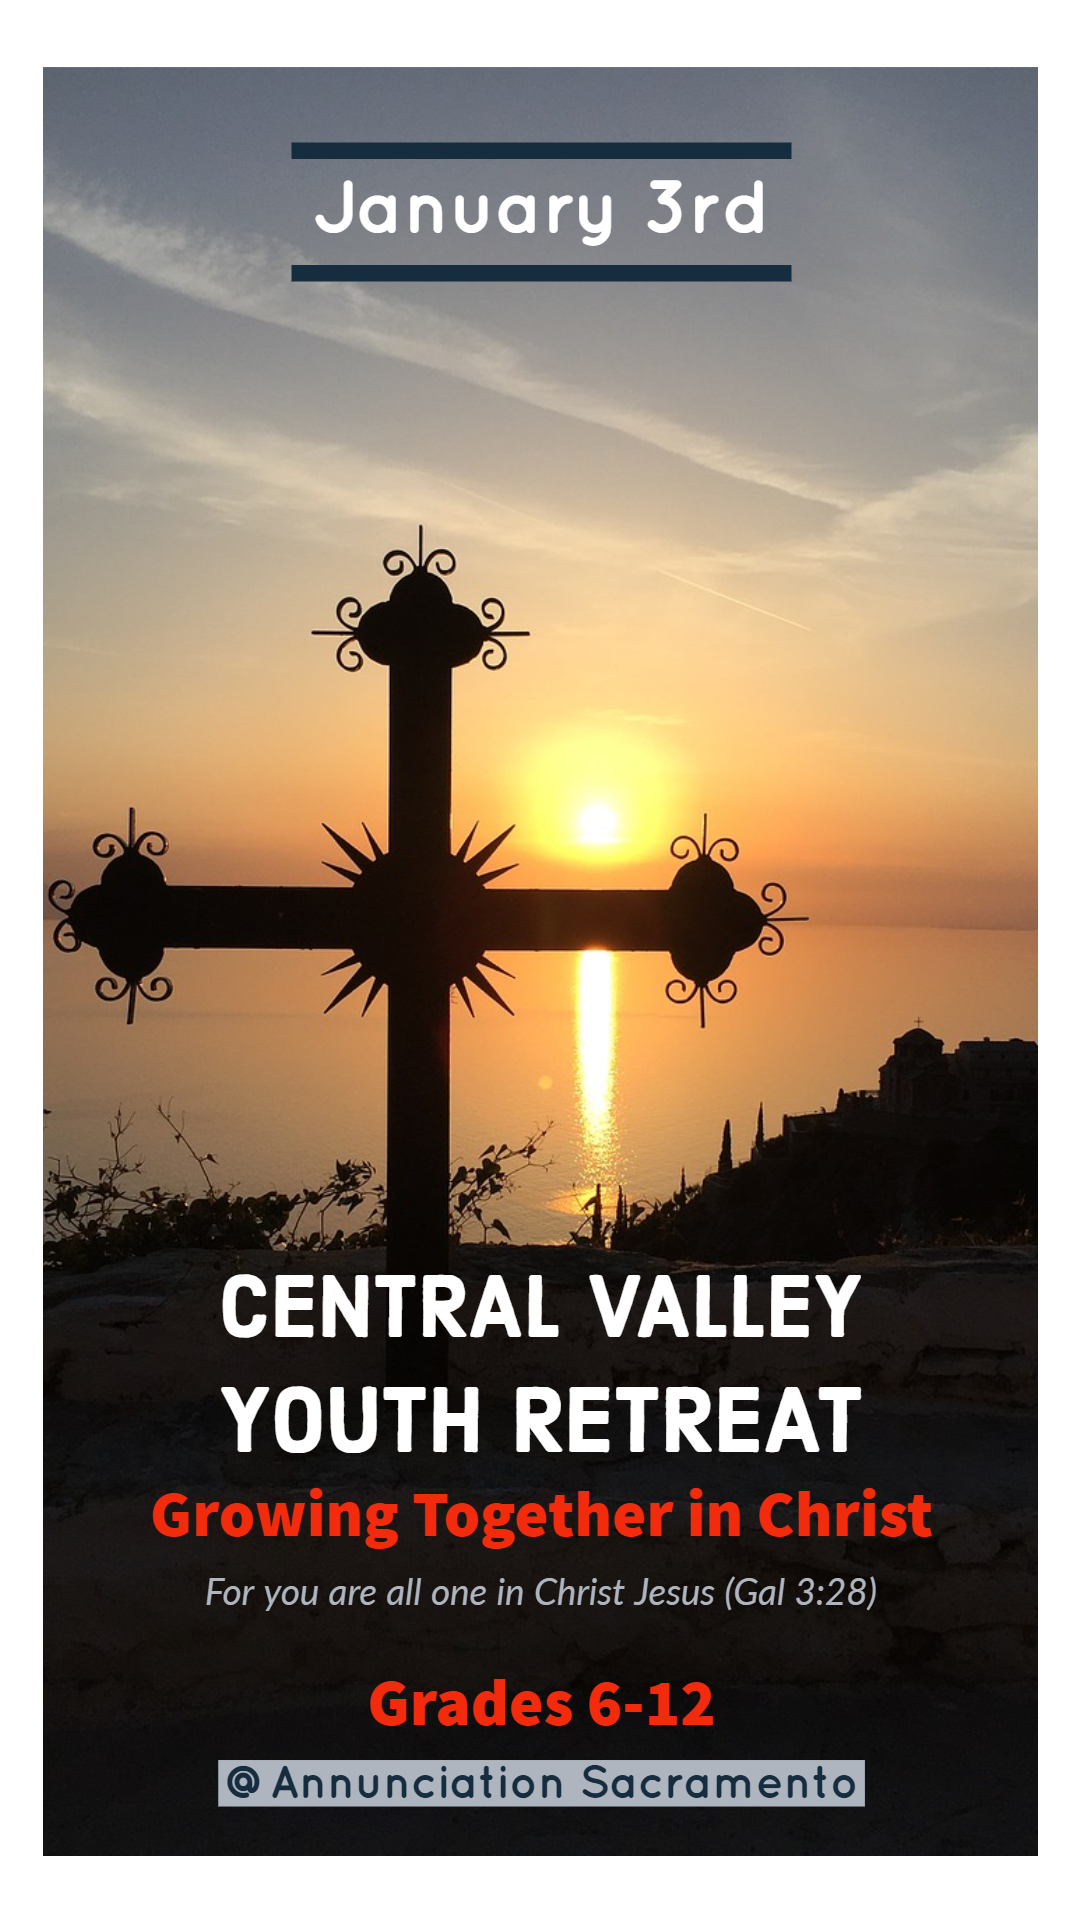 Central Valley Youth Retreat 1.jpg